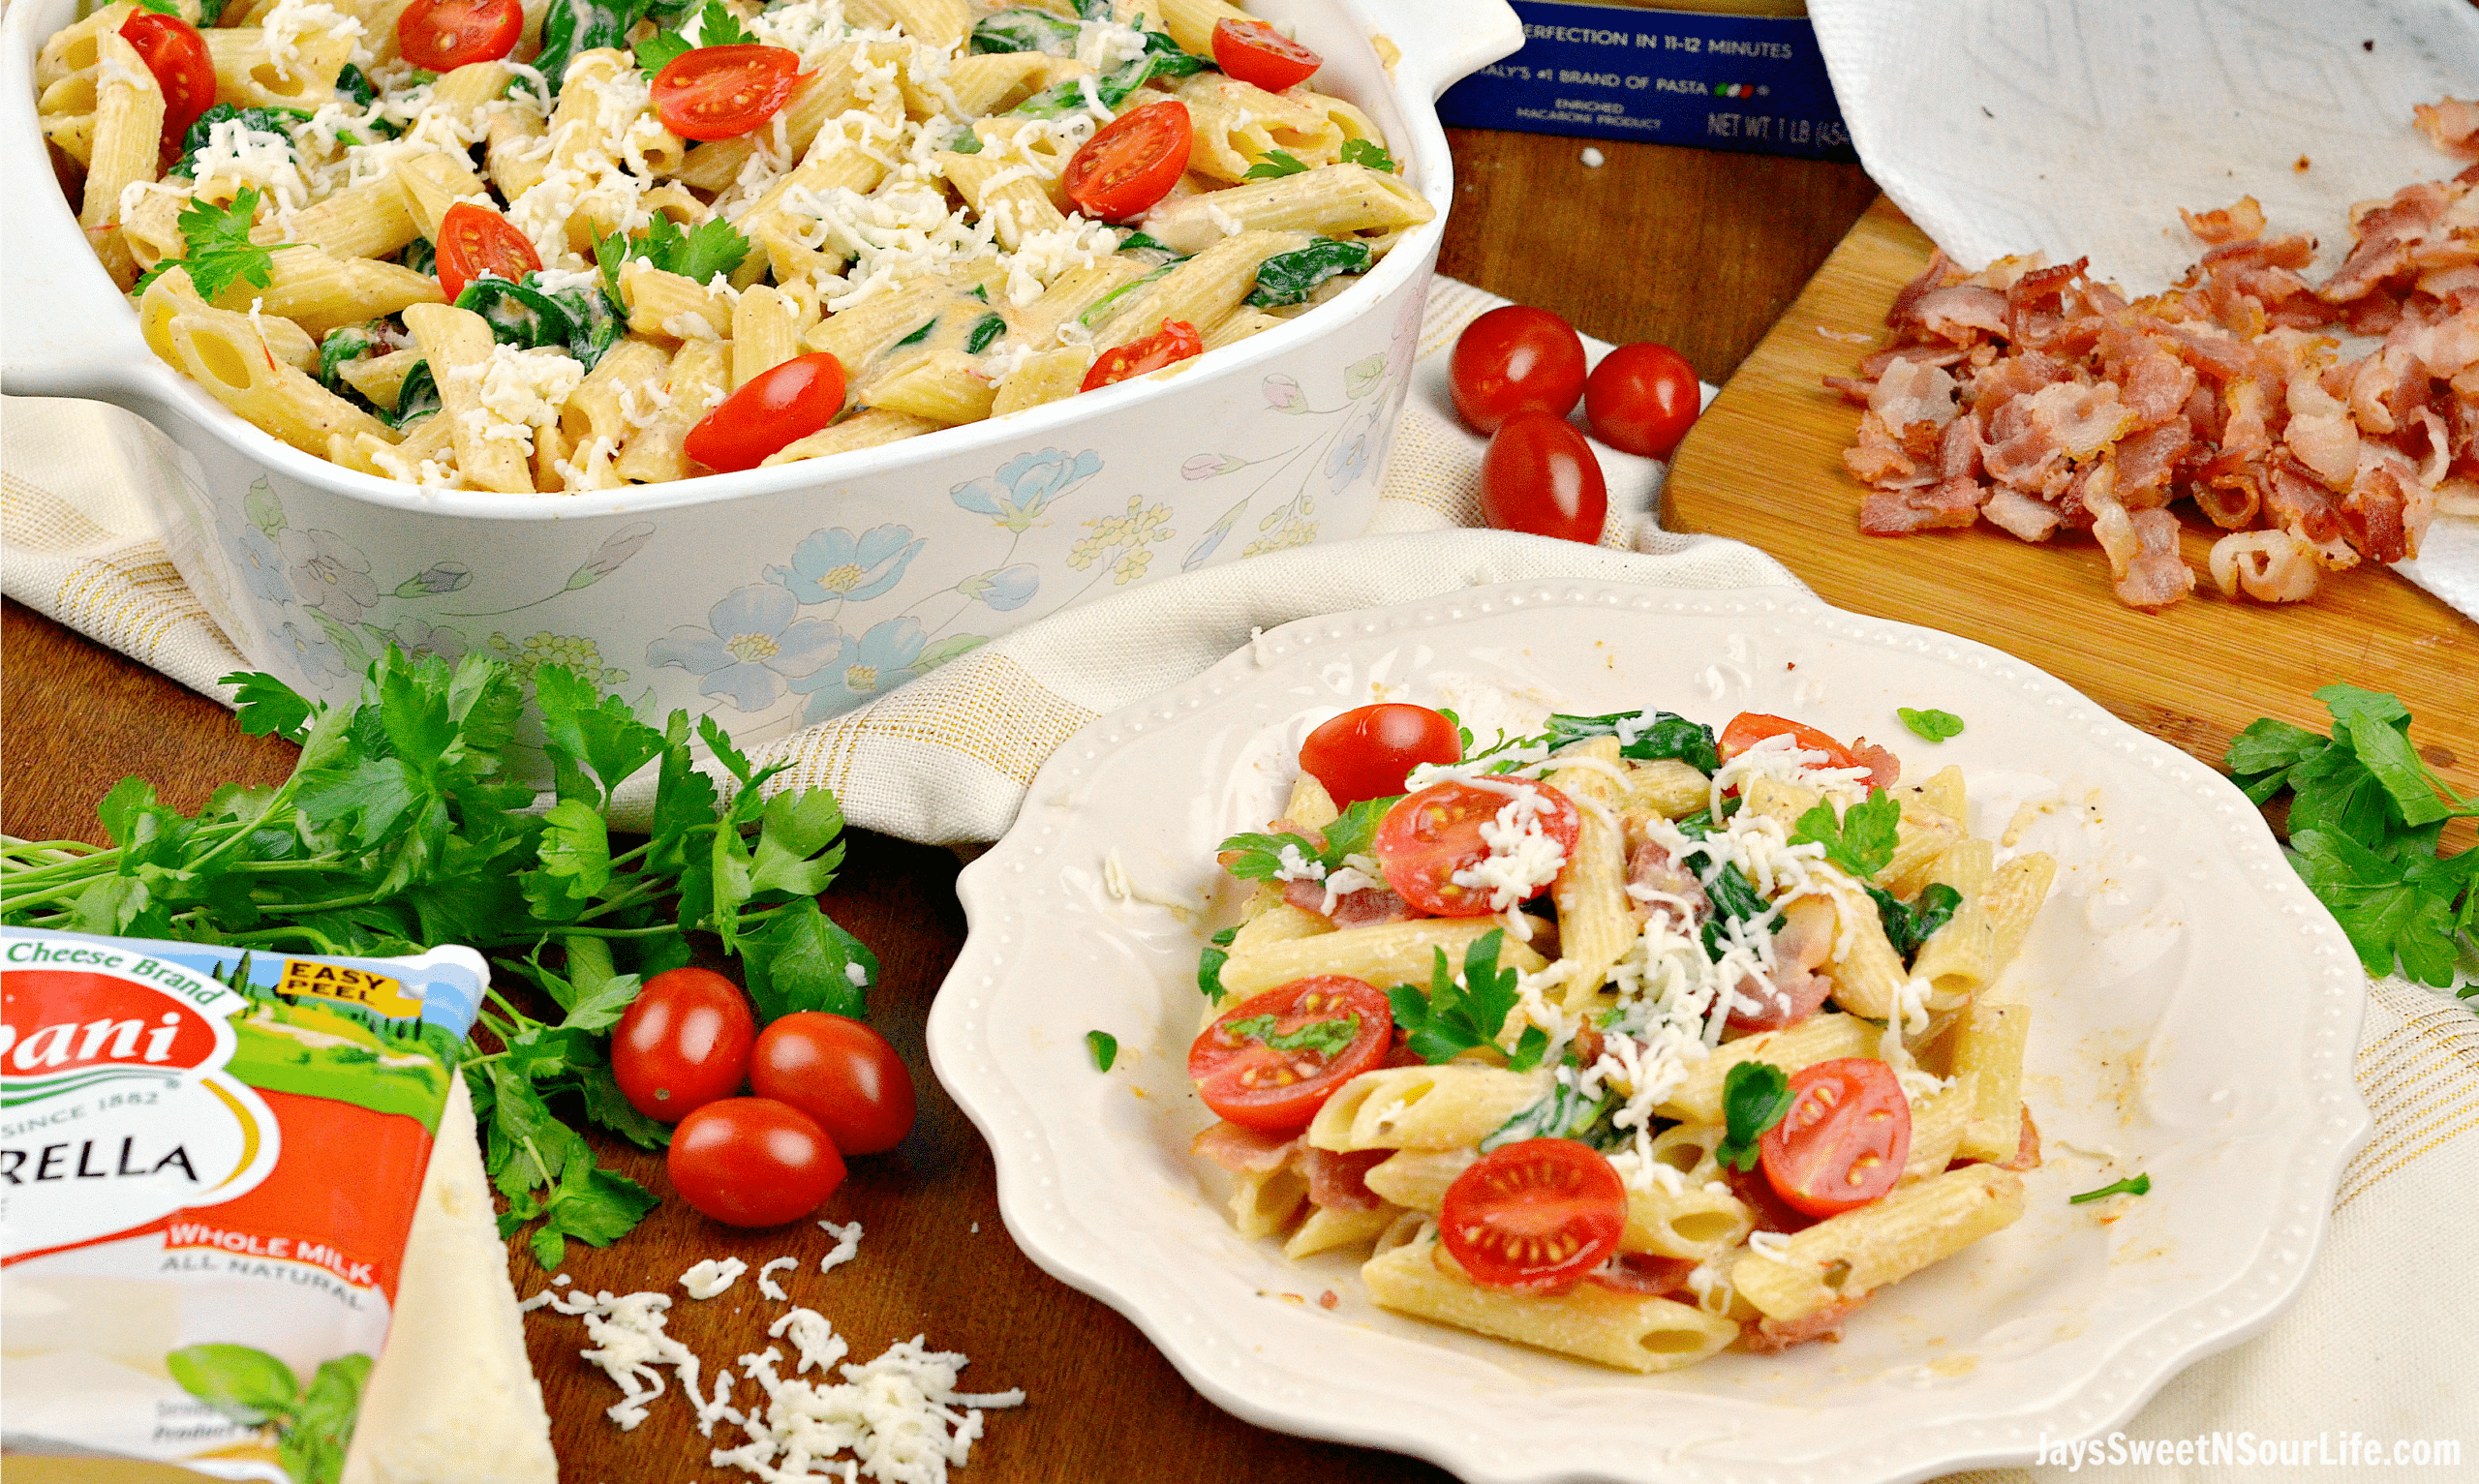 Cheesy Bacon and Spinach Penne Pasta Plate Pan. Treat your family this holiday season with a deliciously easy to make Cheesy Bacon and Spinach Penne Pasta. Perfect for any dinner time during the year. Shared via Jays Sweet N Sour Life.